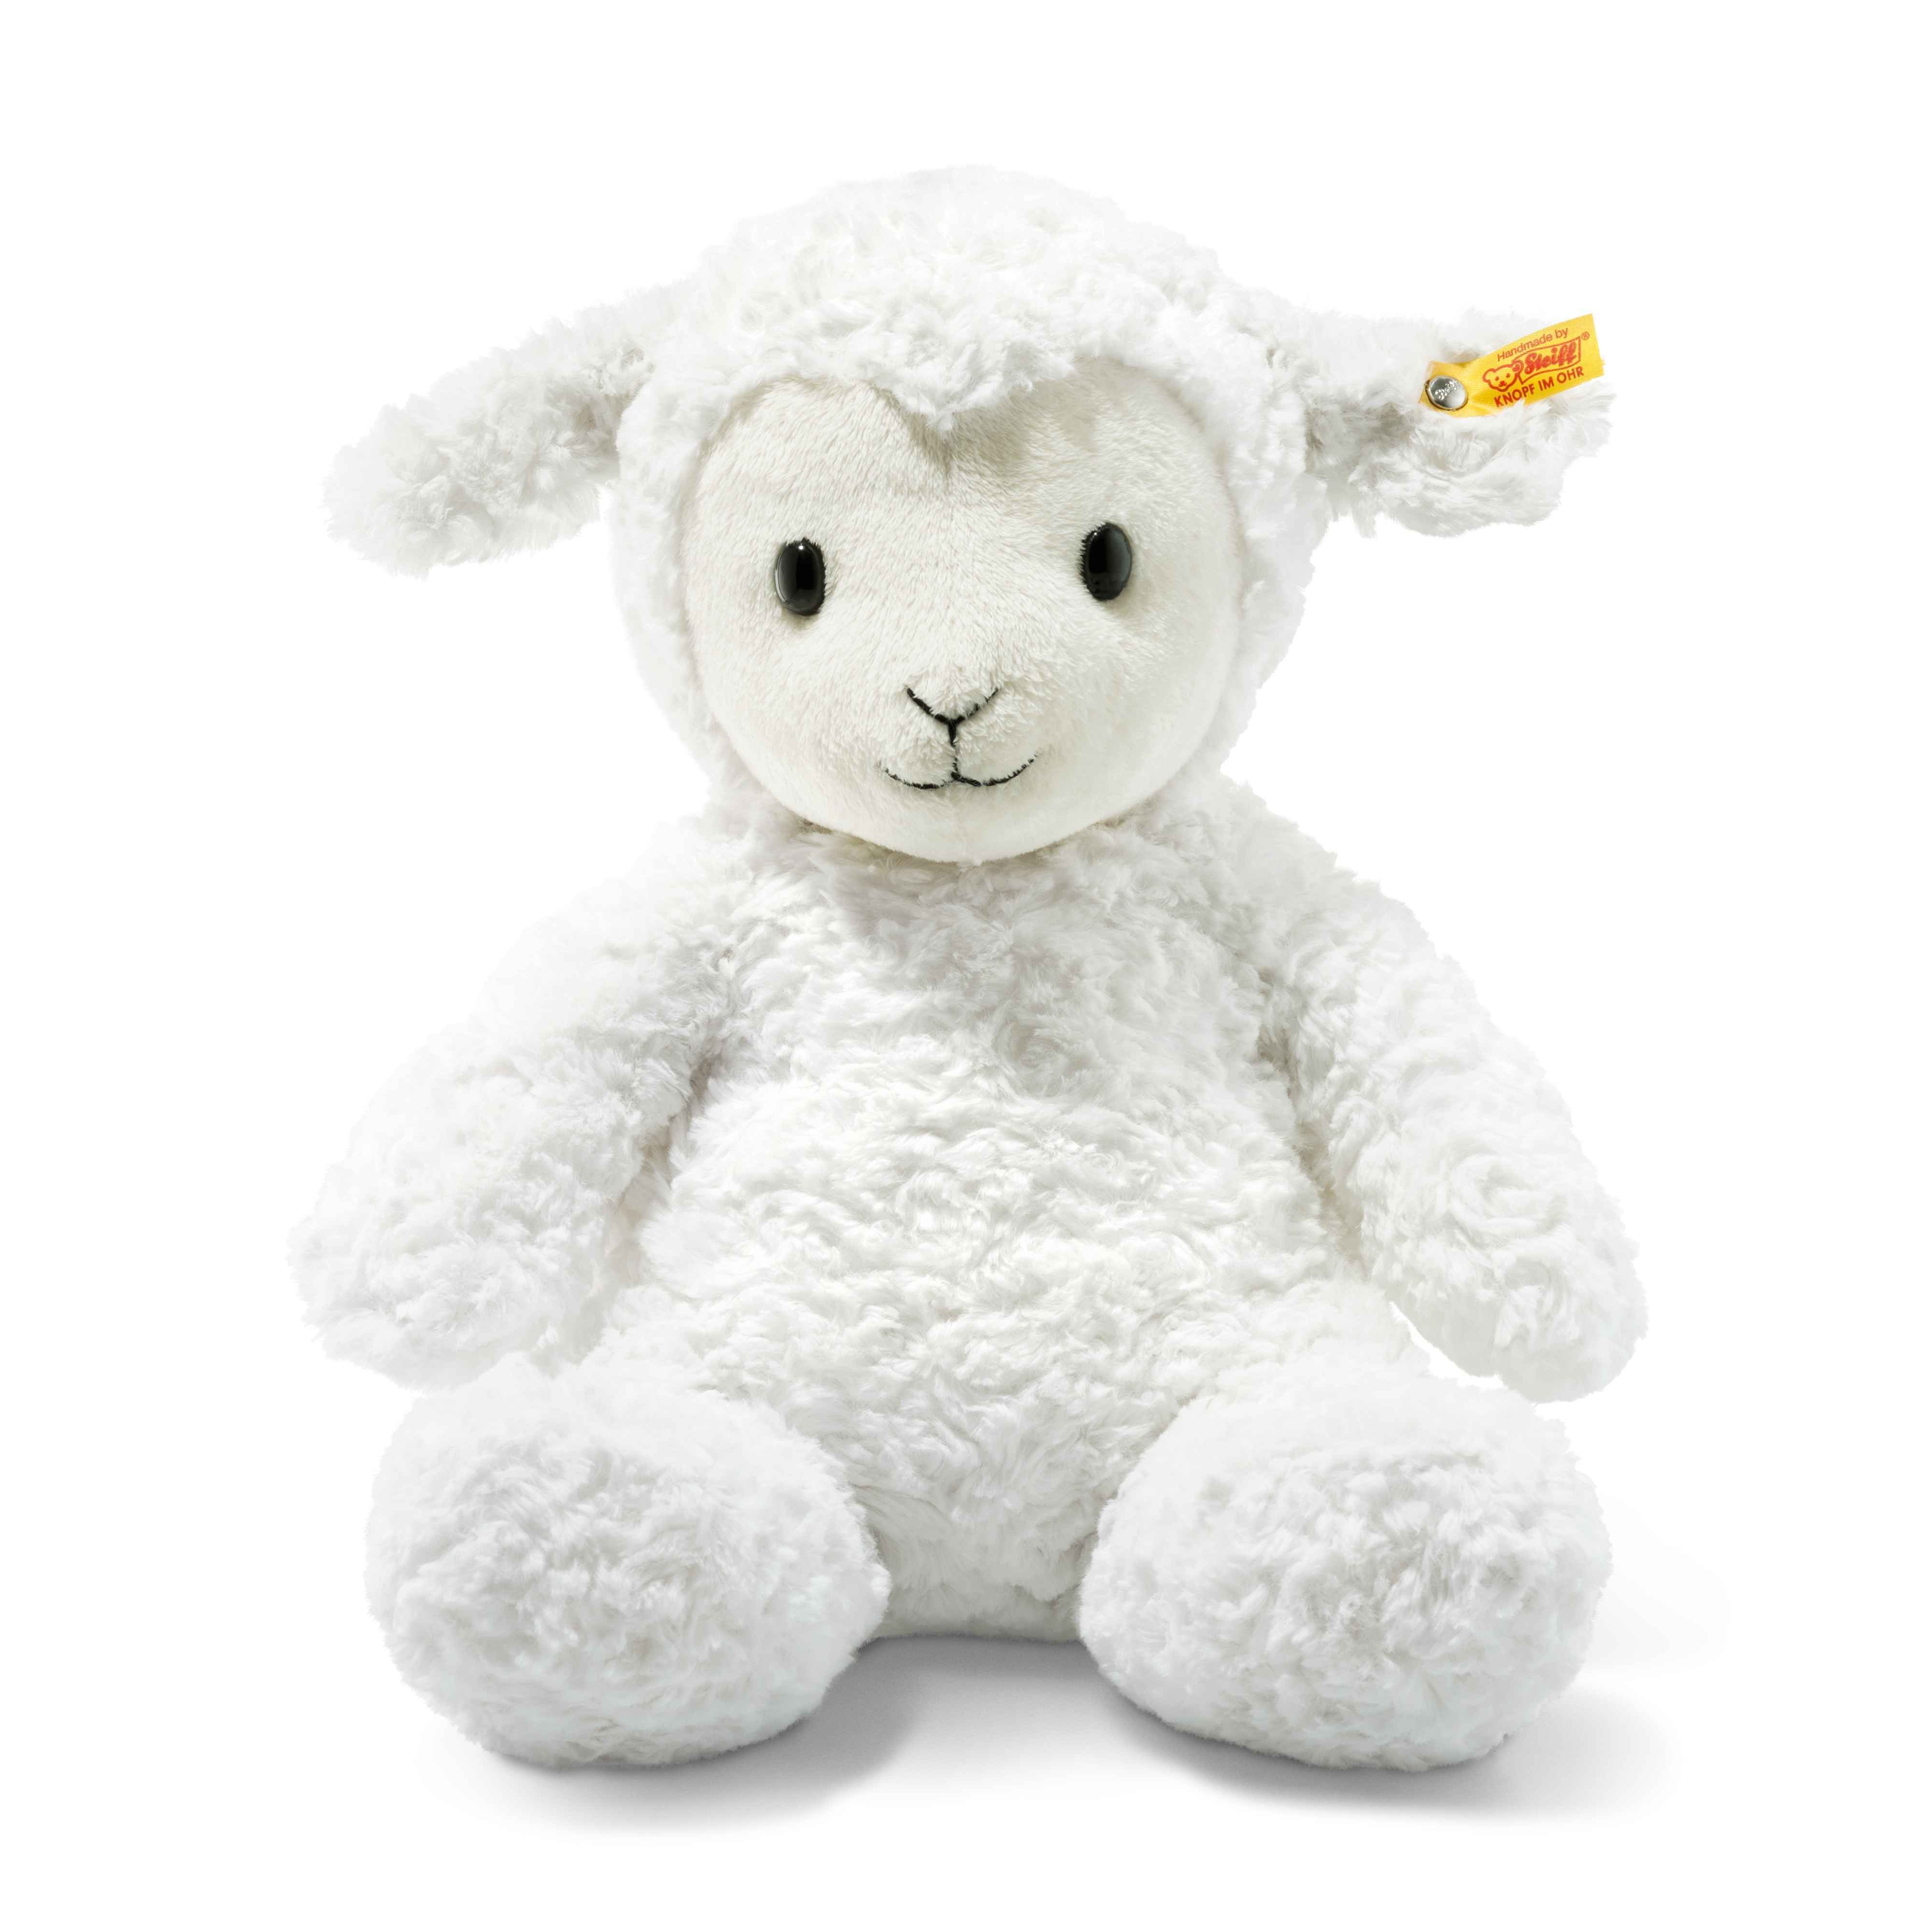 Steiff - Soft Cuddly Friends Fuzzy Lamb, 38 cm